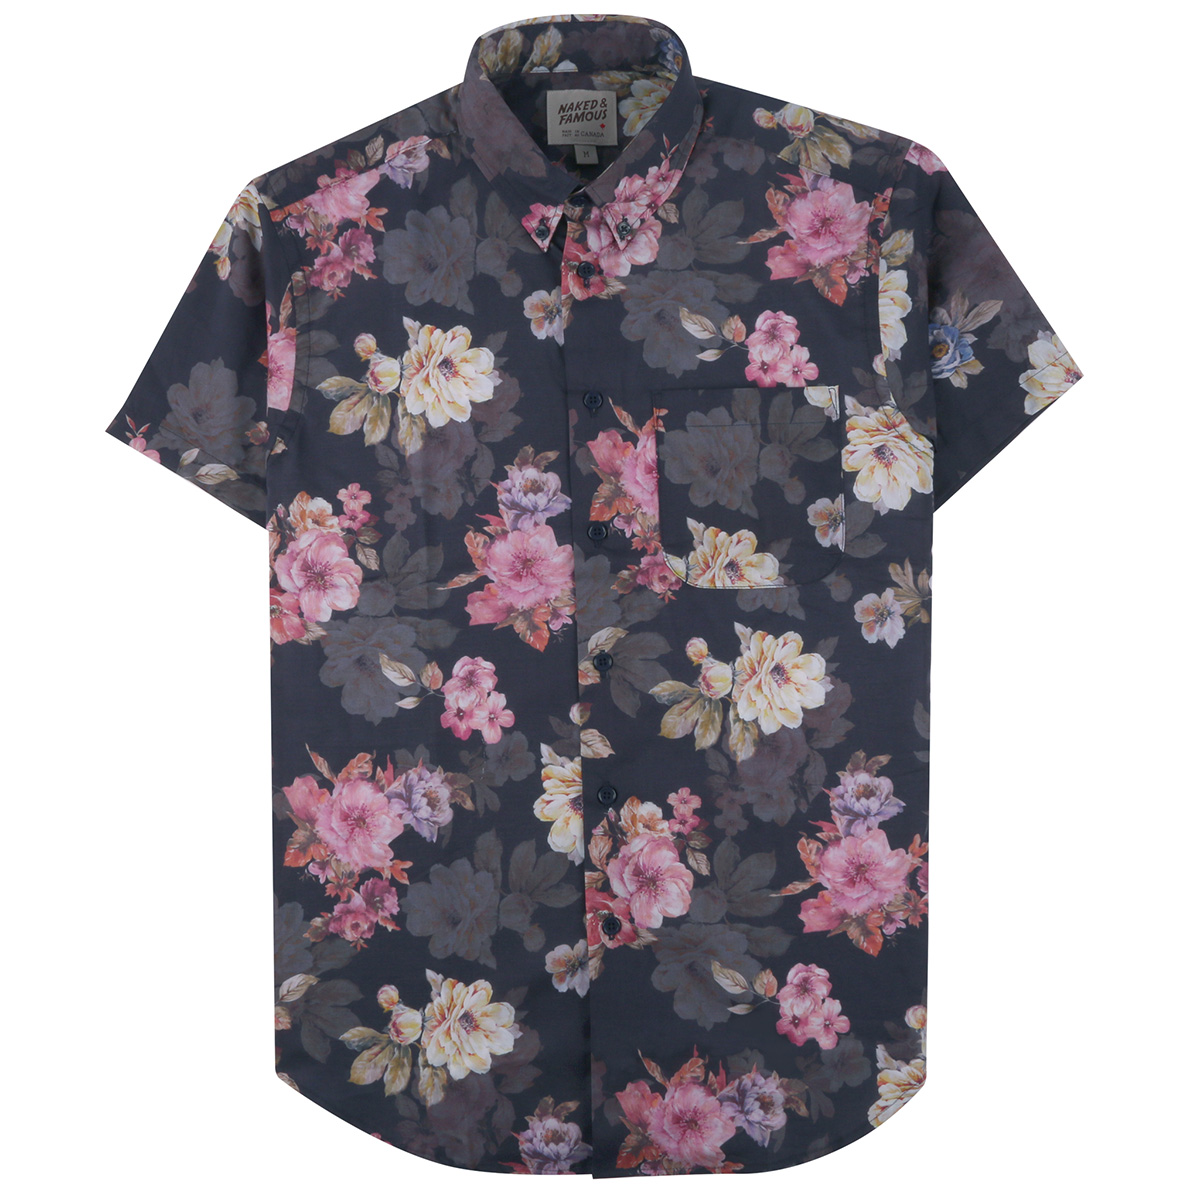 FLOWER PAINTING - NAVY - Short Sleeve Easy Shirt